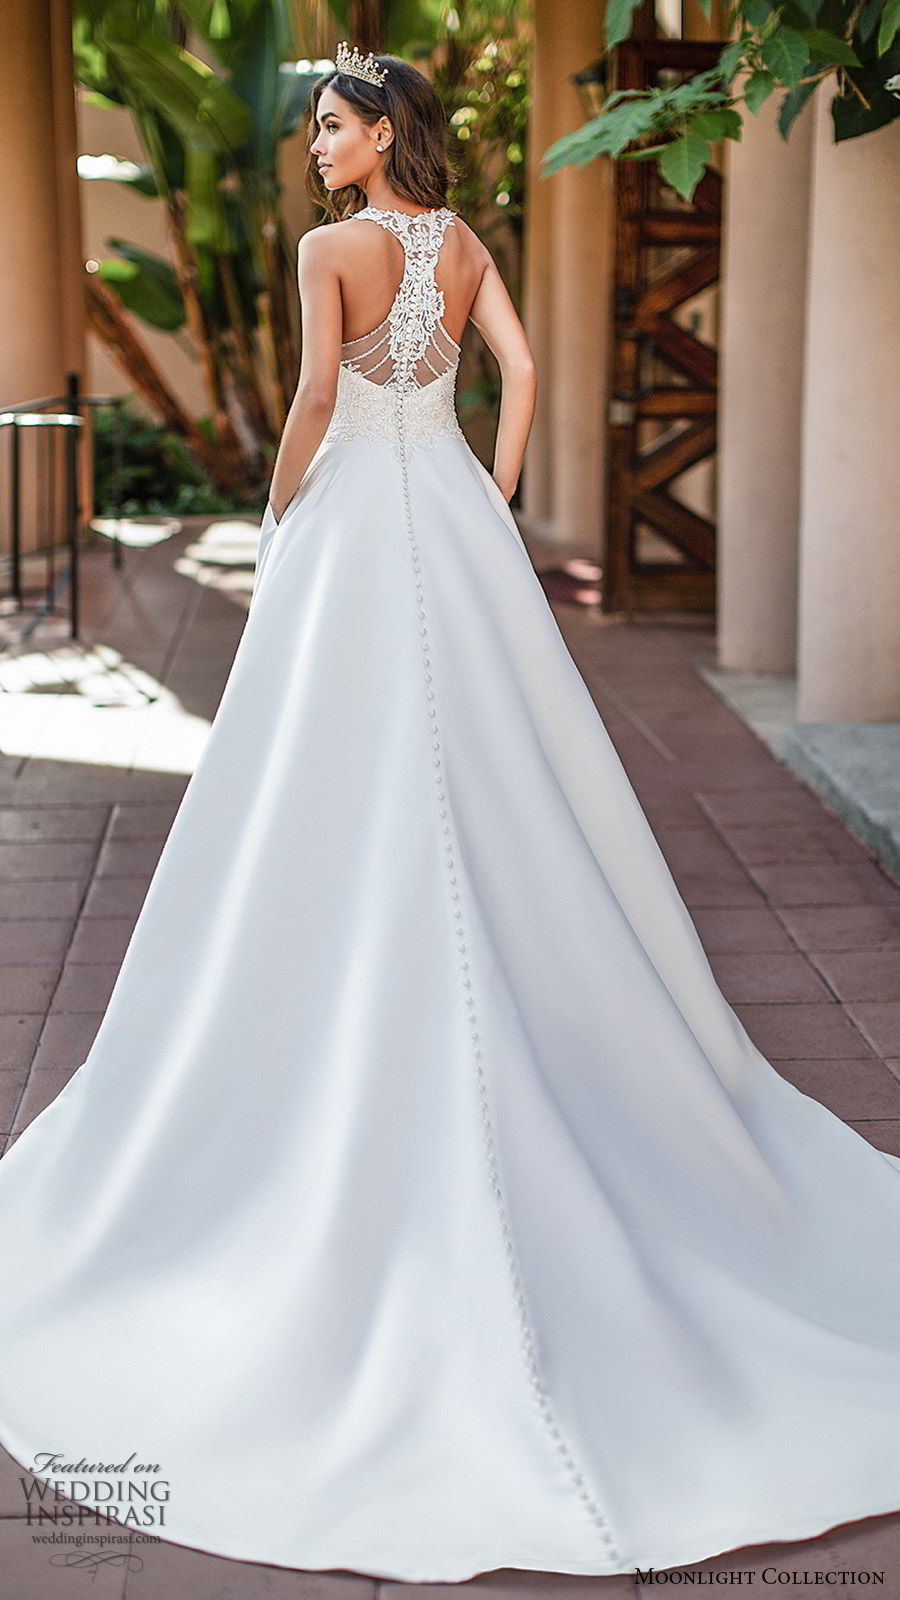 moonlight collection fall 2019 bridal sleeveless illusion straps sheer vneck sweetheart embellished bodice a line ball gown wedding dress (4) princess elegant romantic racer back chapel train bv